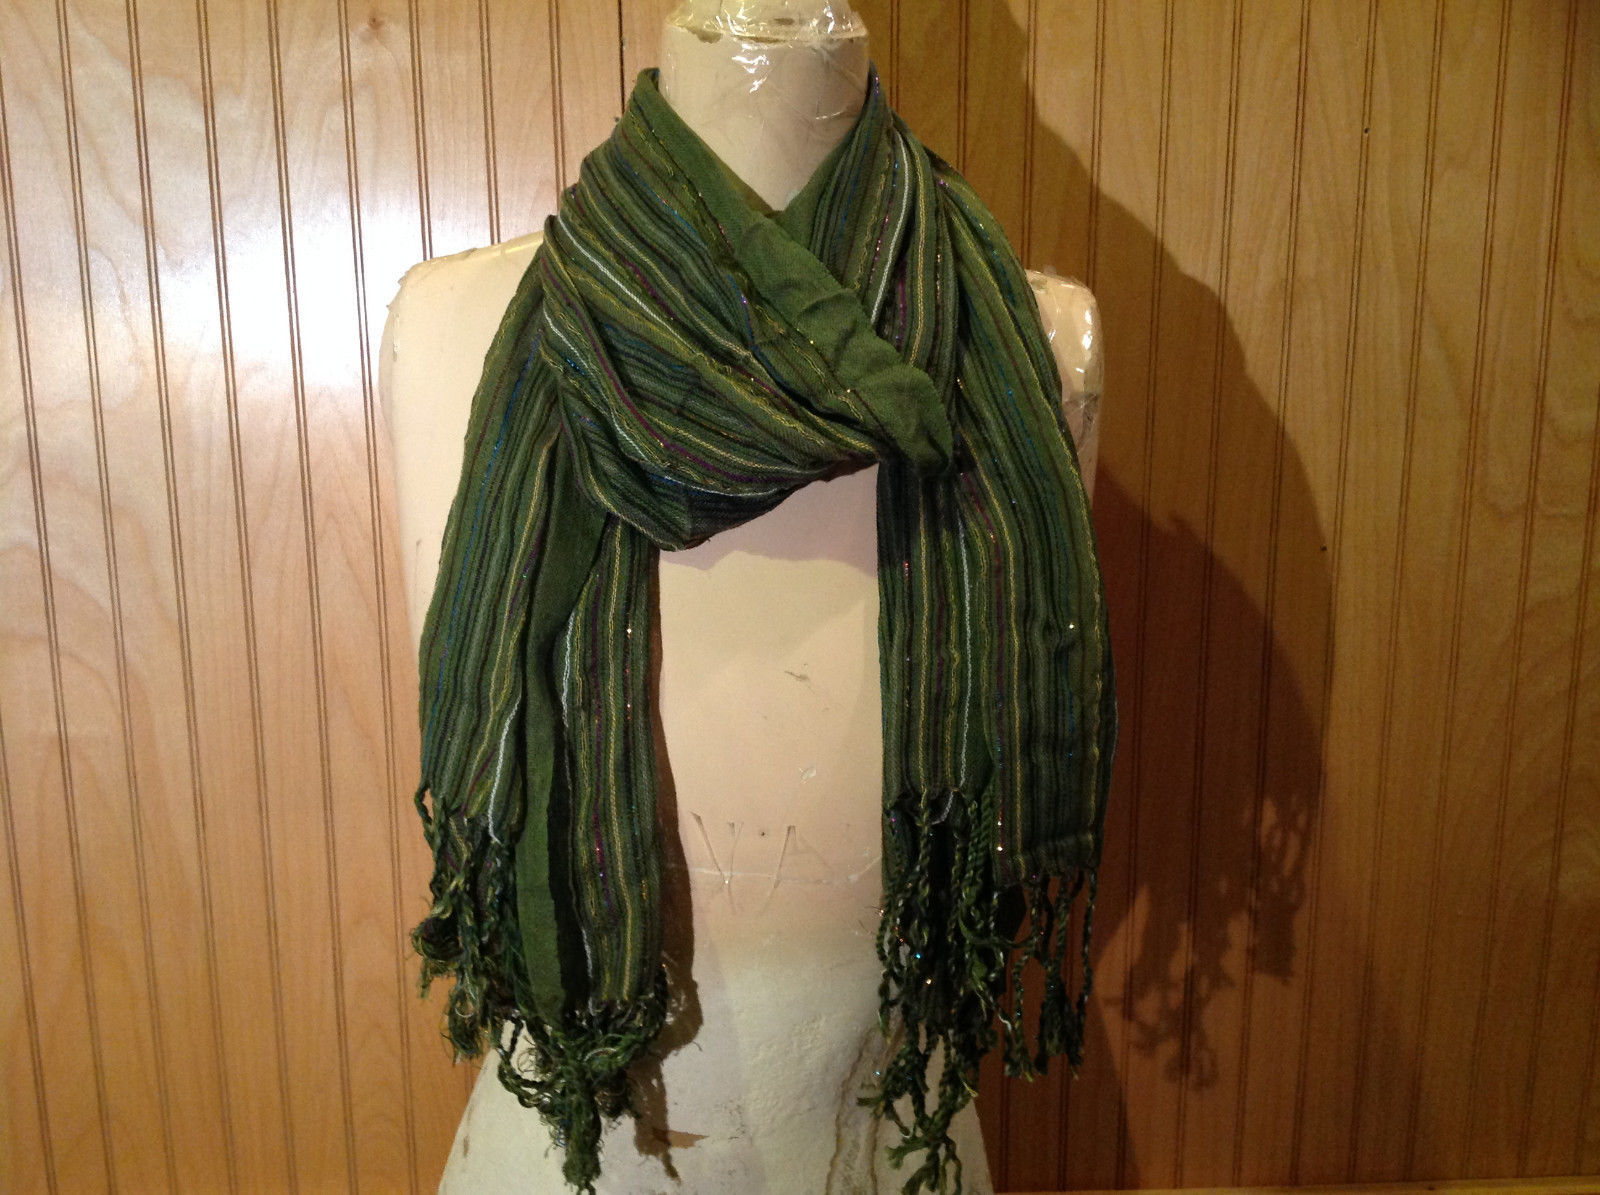 Forest Green Tasseled Fashion Scarf Light Weight Material NO TAGS